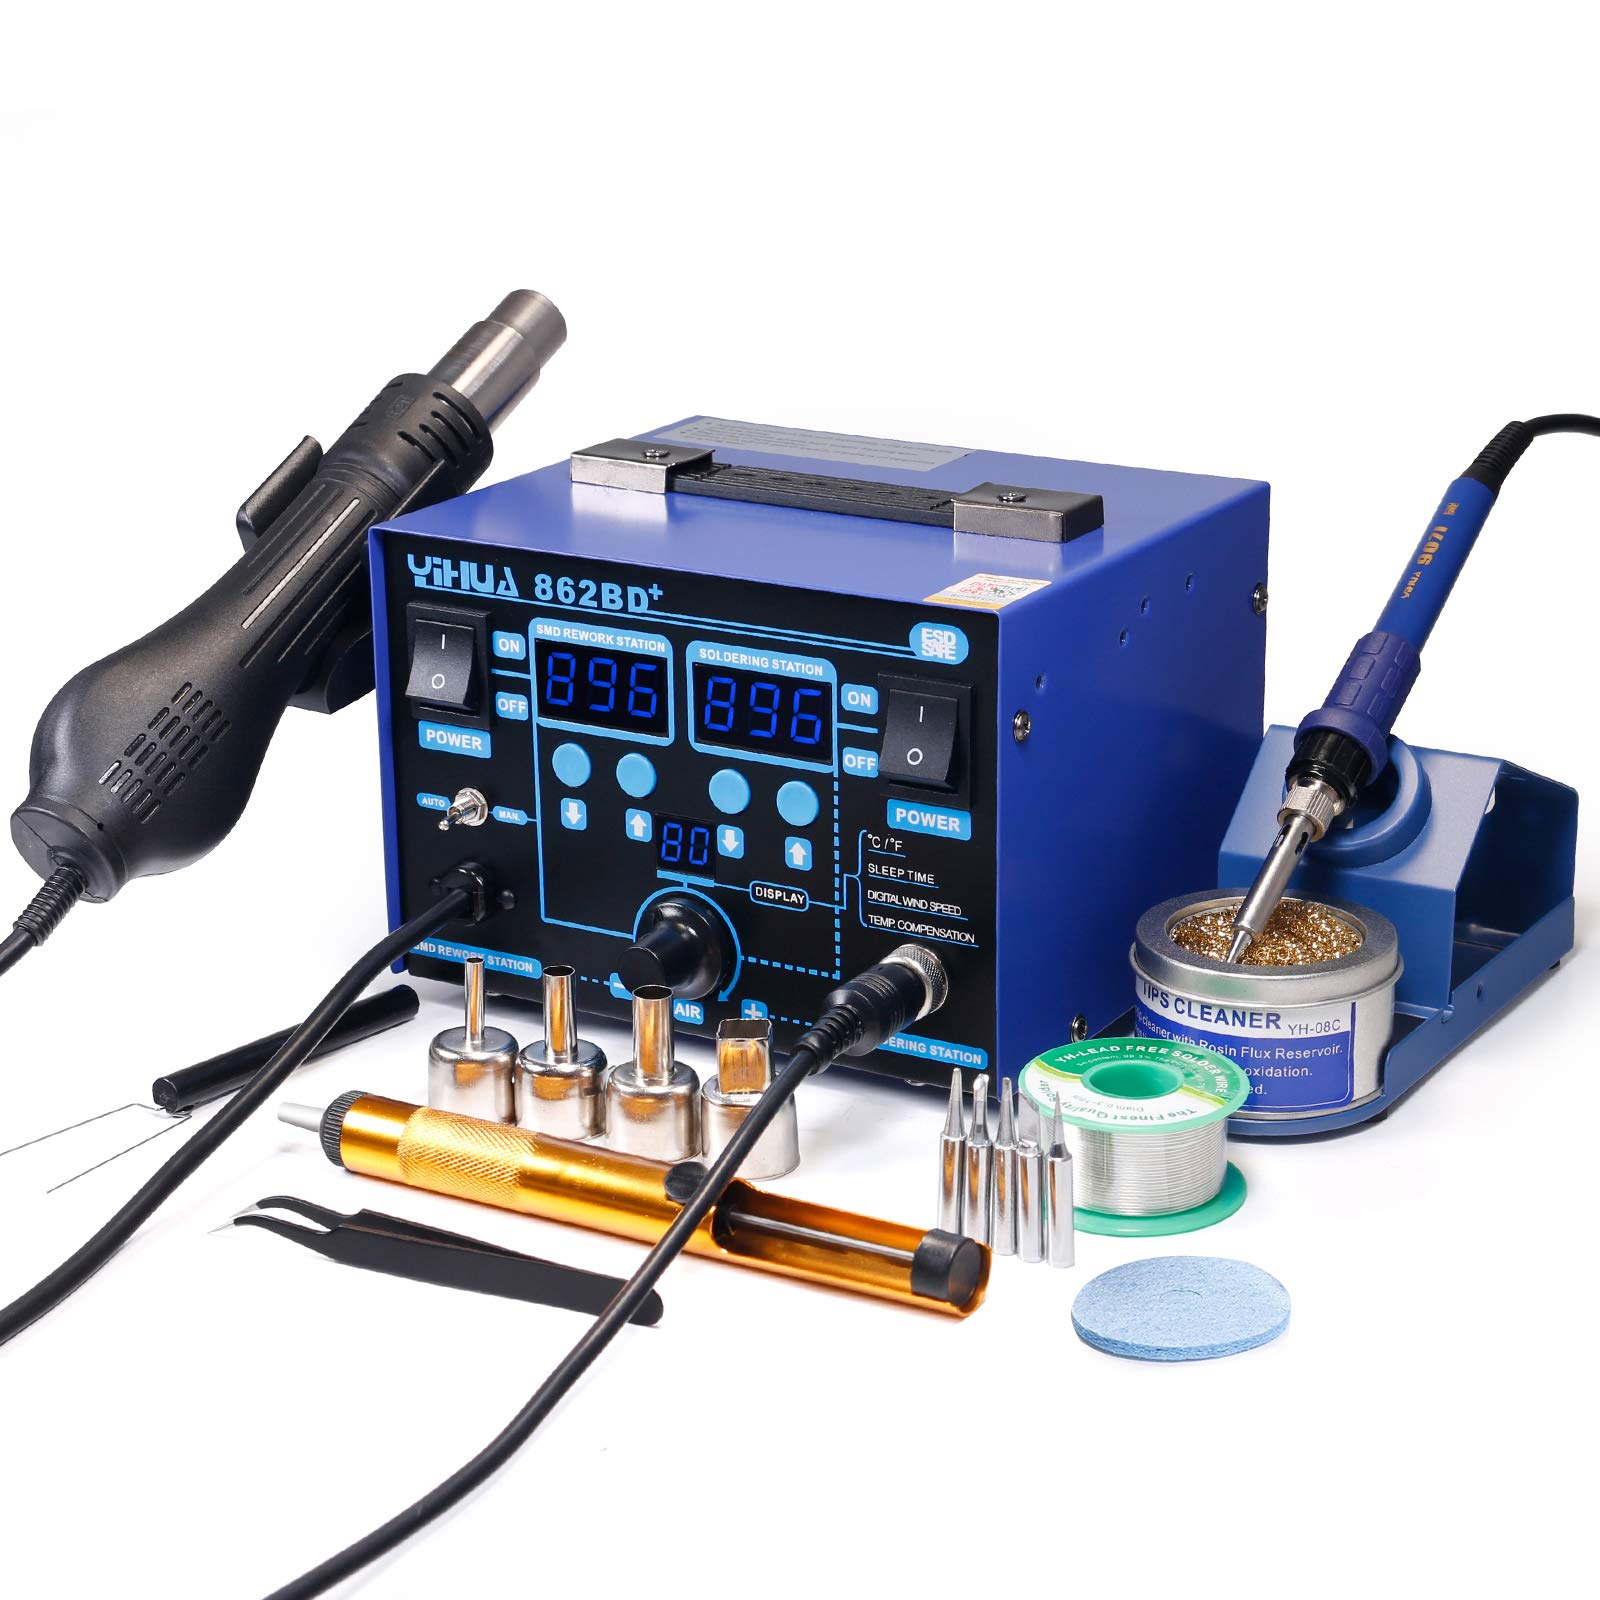 YIHUA 862BD+ SMD ESD Safe 2 in 1 Soldering Iron Hot Air Rework Station °F /°C with Multiple Functions by YIHUA